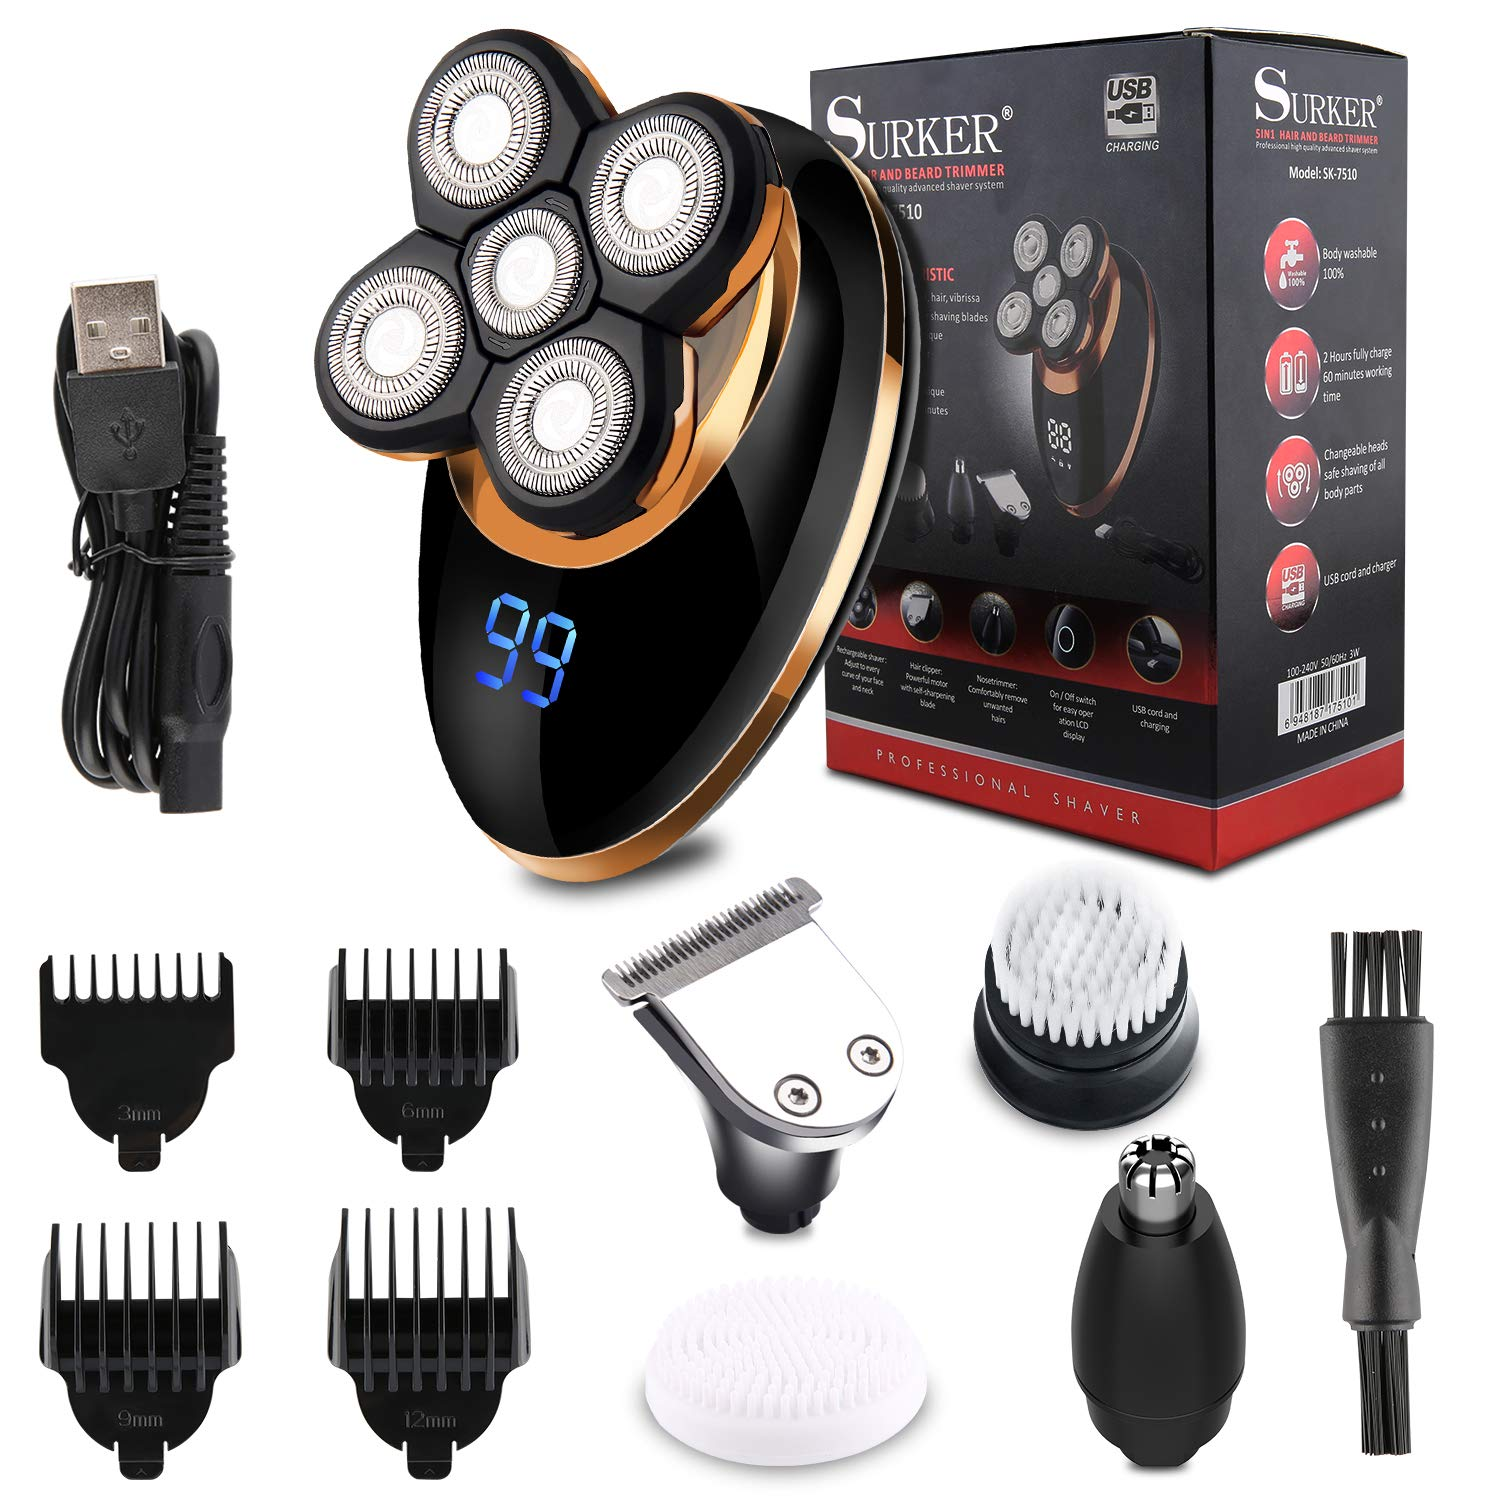 4-In-1 Electric Shaver for Men, Cordless Wet/Dry Rotary Razor Beard Trimmer Set